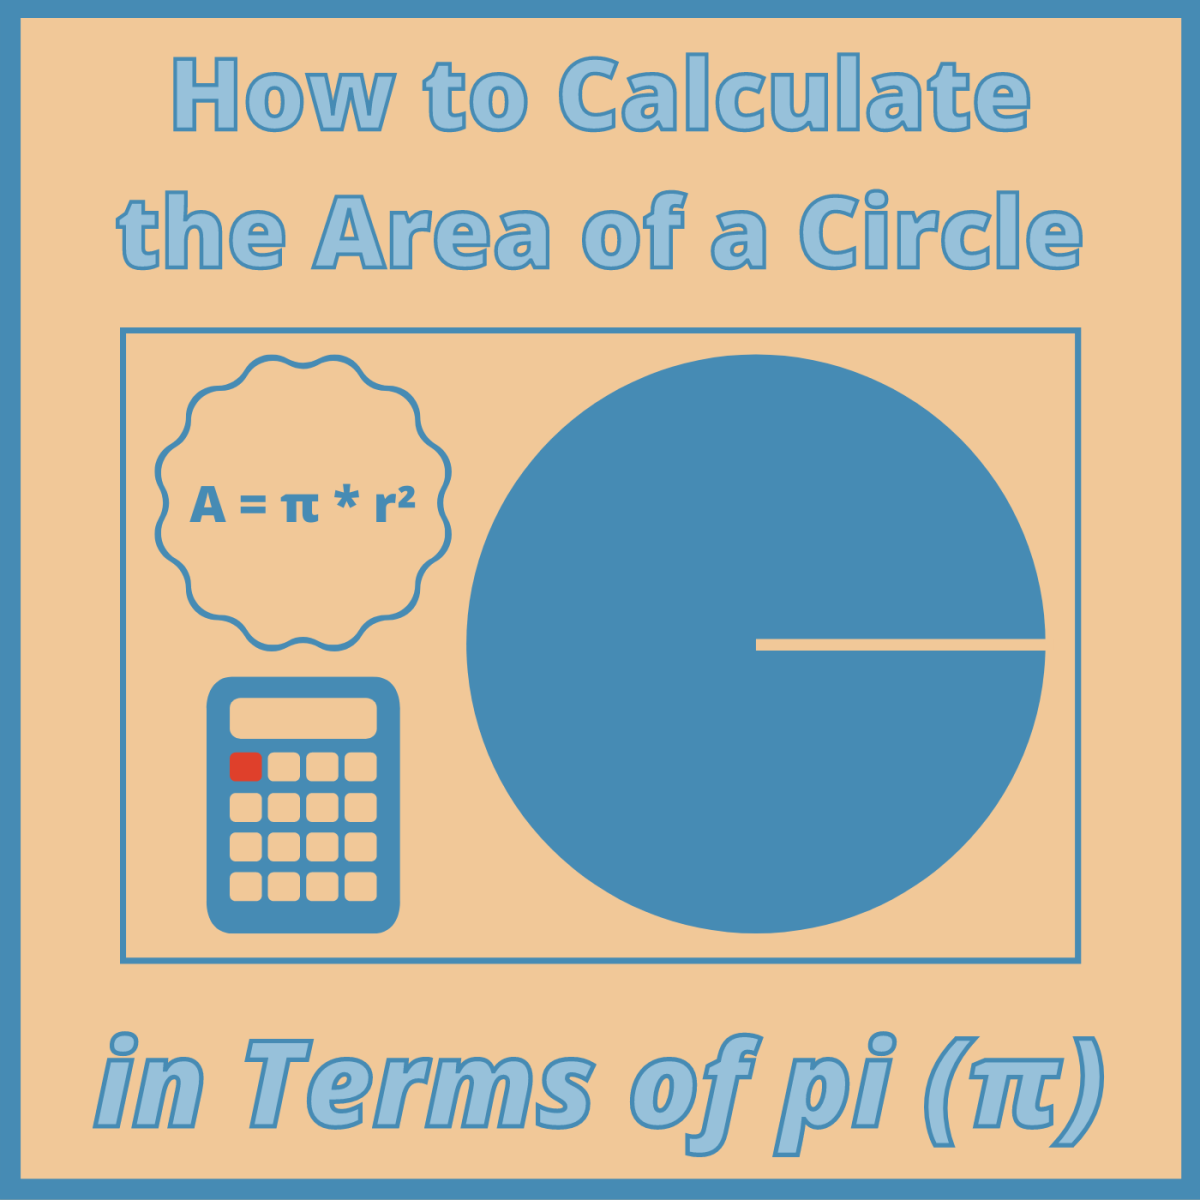 How to Calculate the Area of Circle in Terms of pi (π)